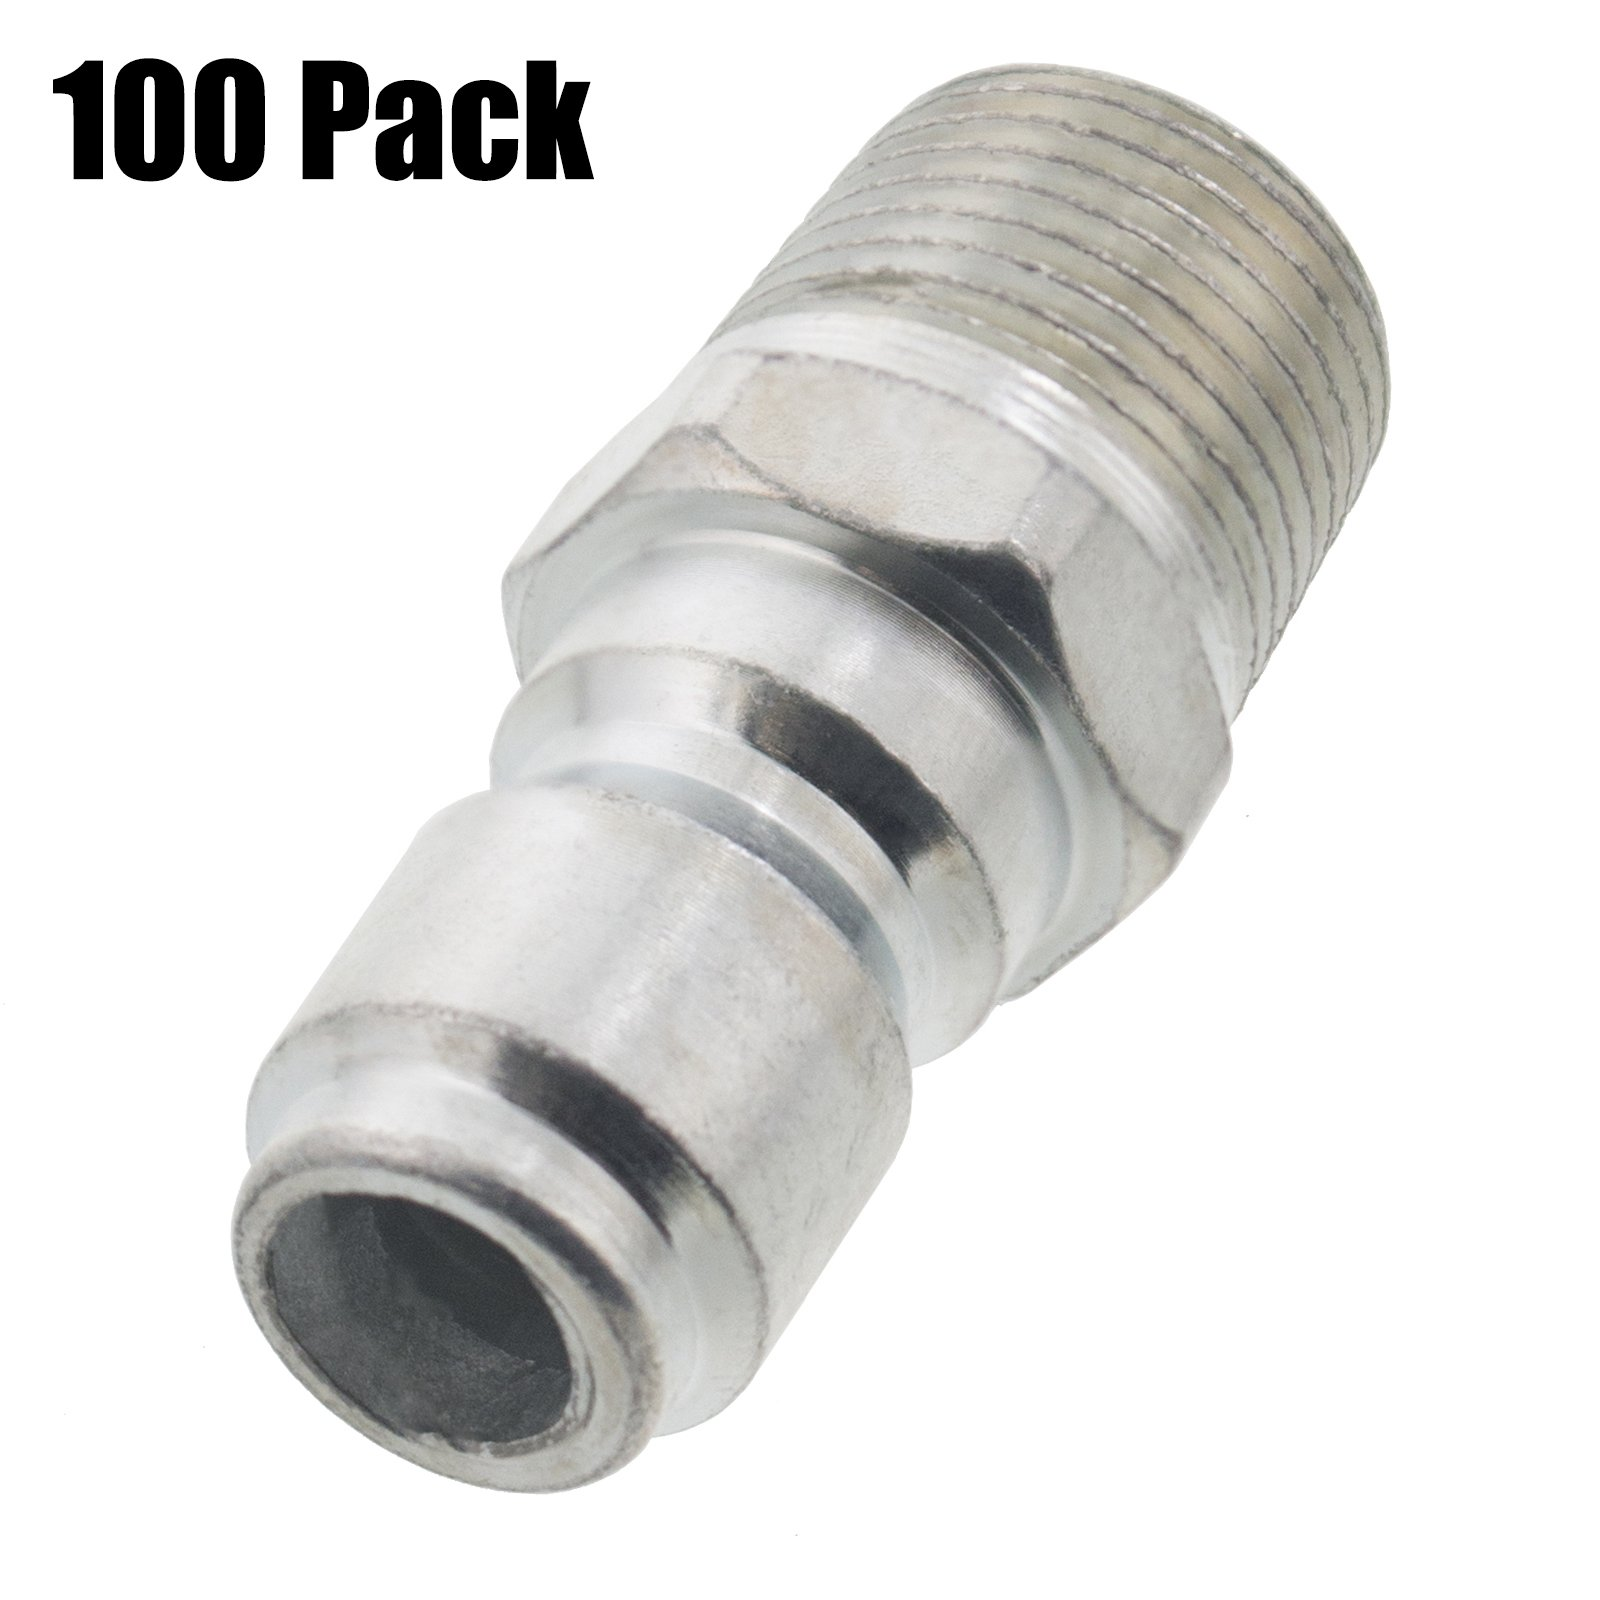 Erie Tools 100 Pressure Washer 3/8in. Male NPT to Quick Connect Plug Zinc Plated Coupler High Temp 4000 PSI 10.5 GPM by Erie Tools